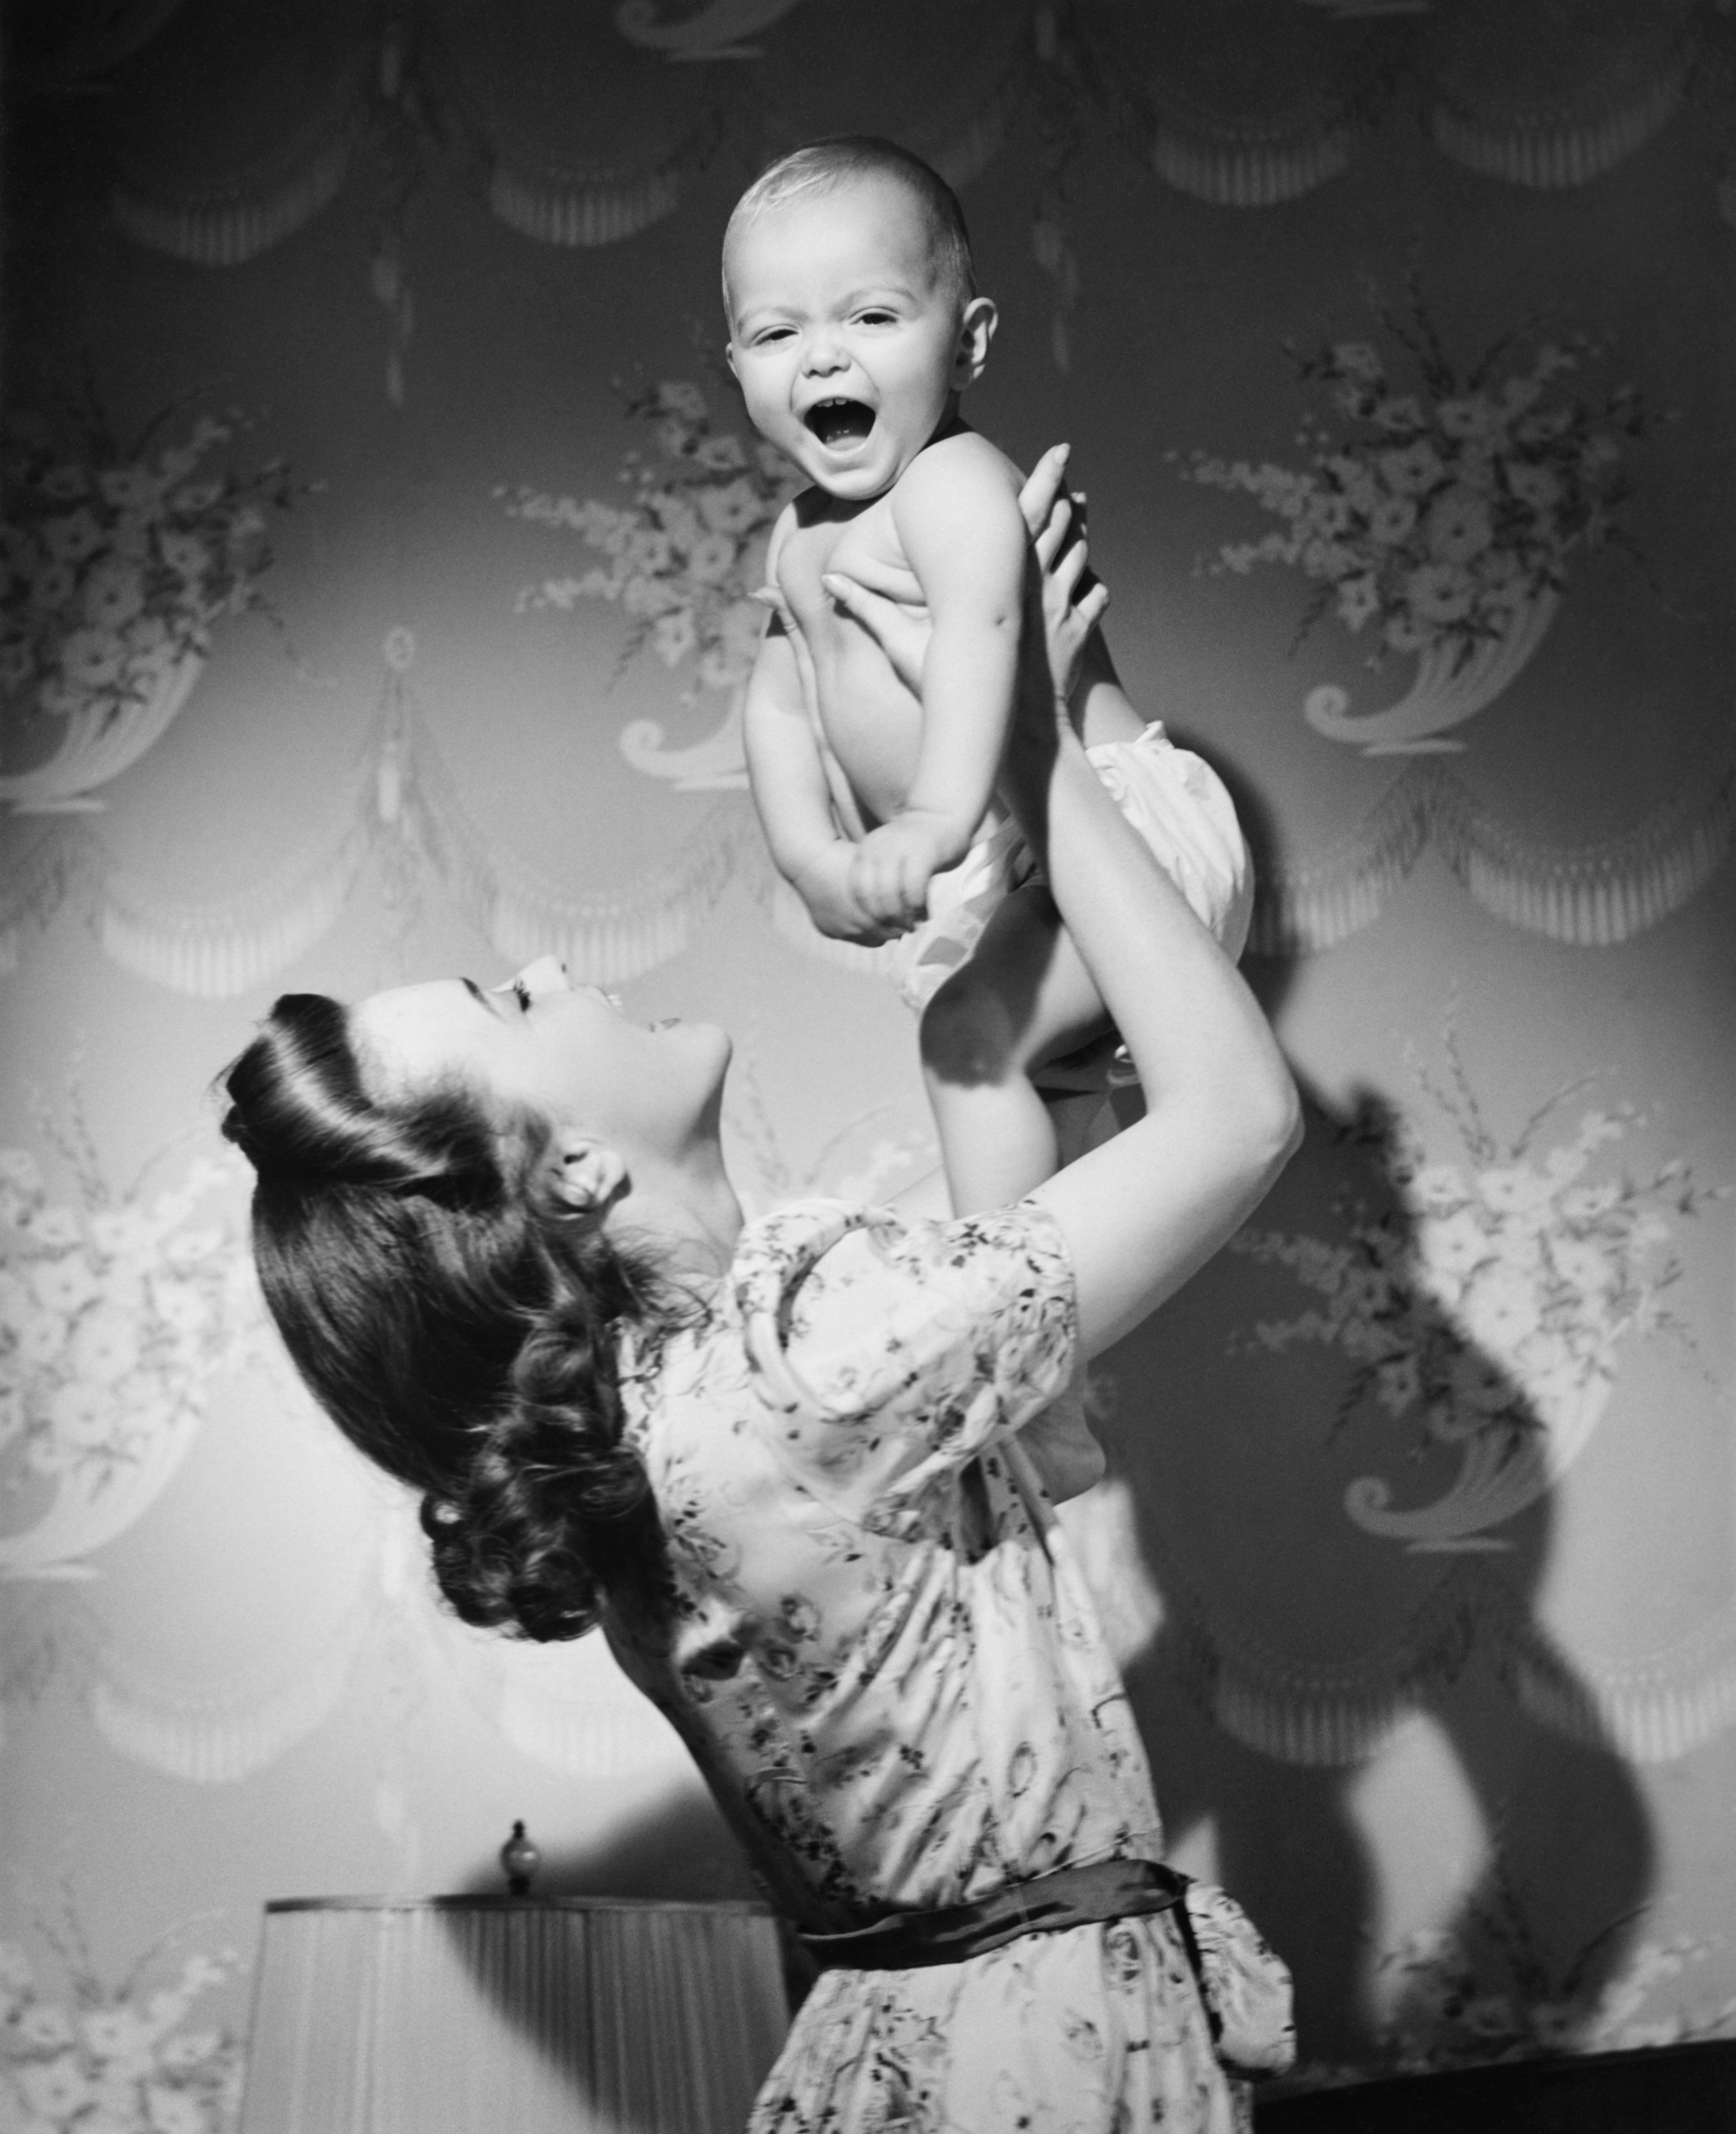 Retro Baby Names: The Girls' And Boys' Names From The 1900s That Are Enjoying A